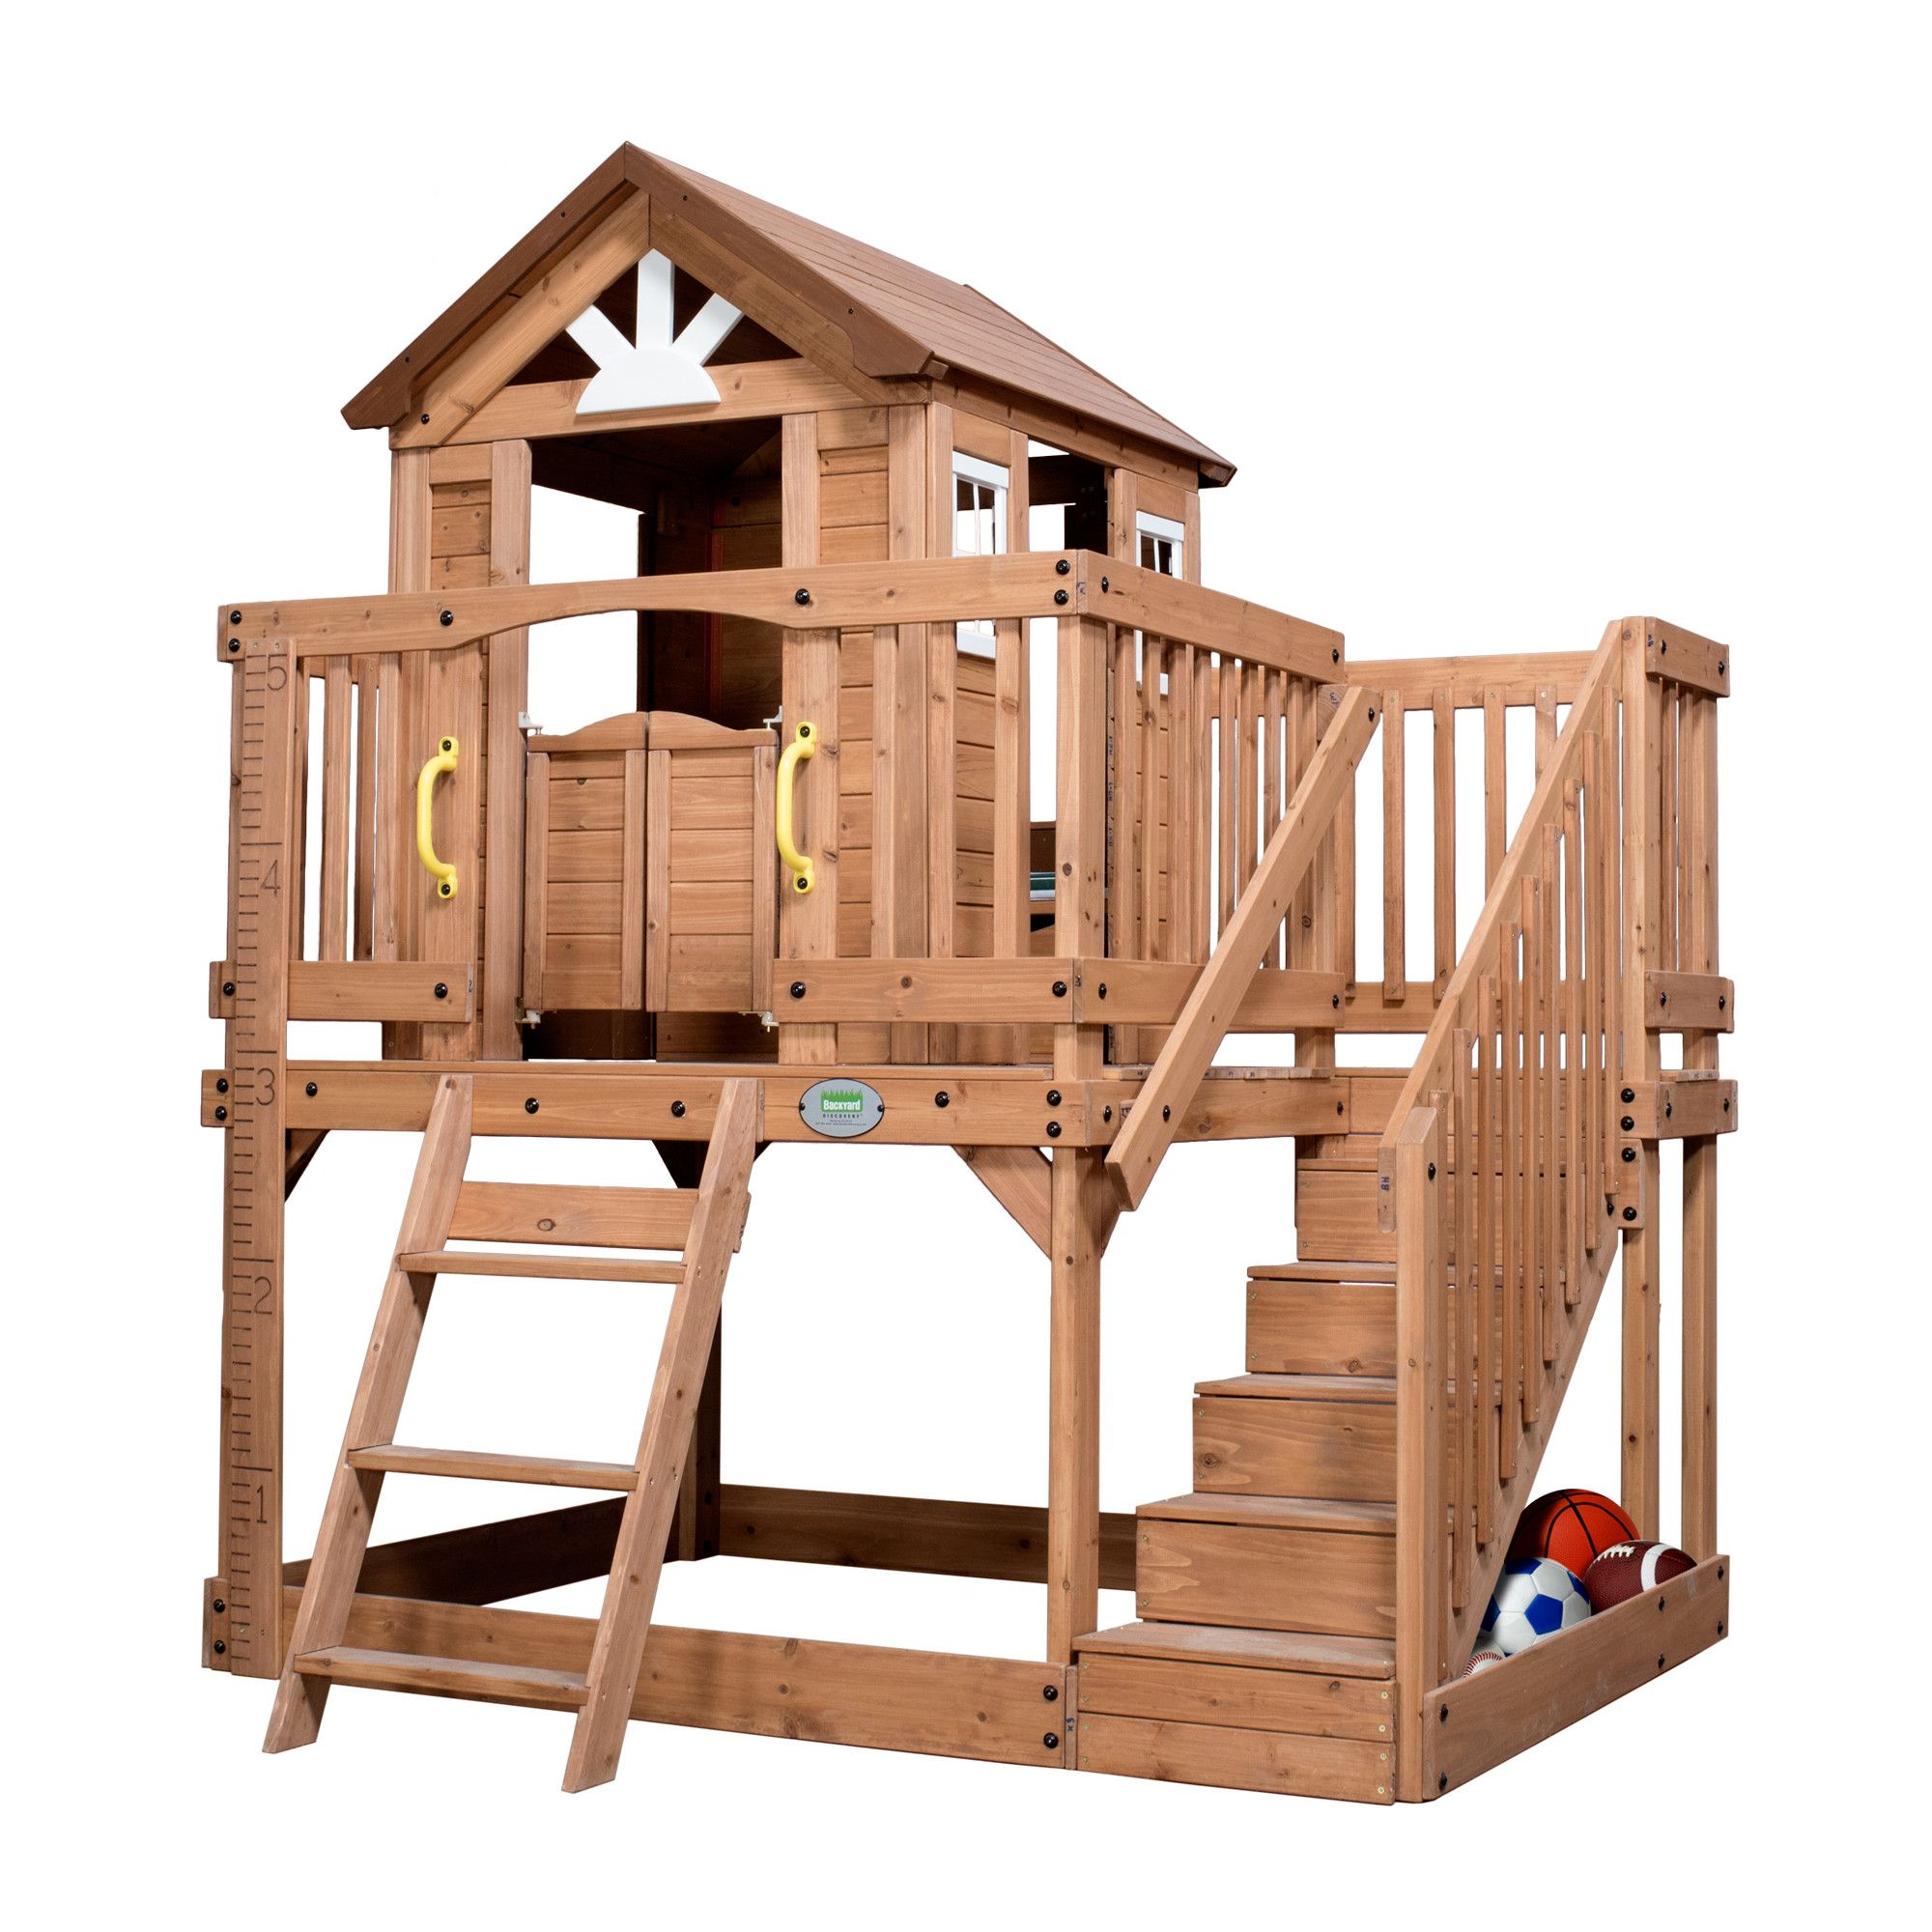 scenic heights wooden playhouse cedar playhouse playhouses and